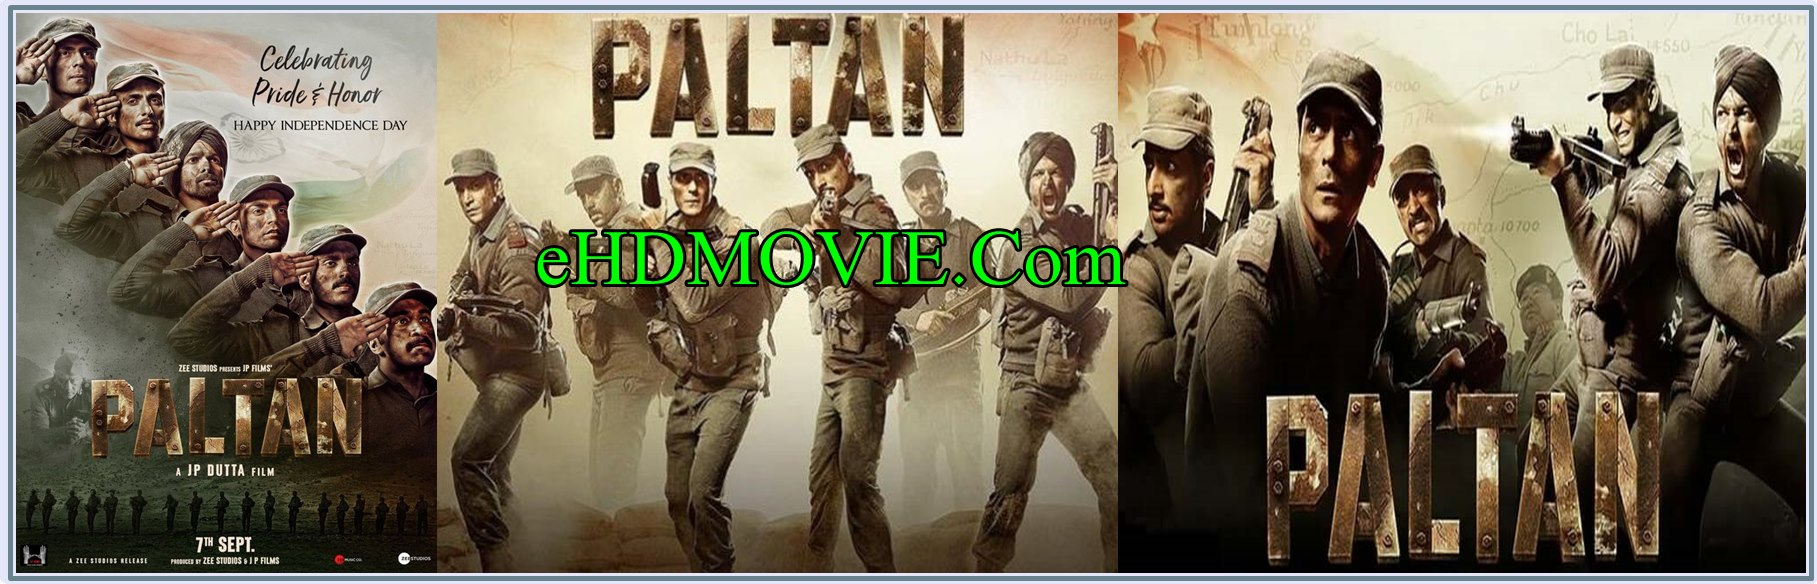 Paltan 2018 Full Movie Hindi 1080p - 720p - HEVC - 480p ORG WEB-DL 400MB - 700MB - 1.1GB - 3.1GB ESubs Free Download